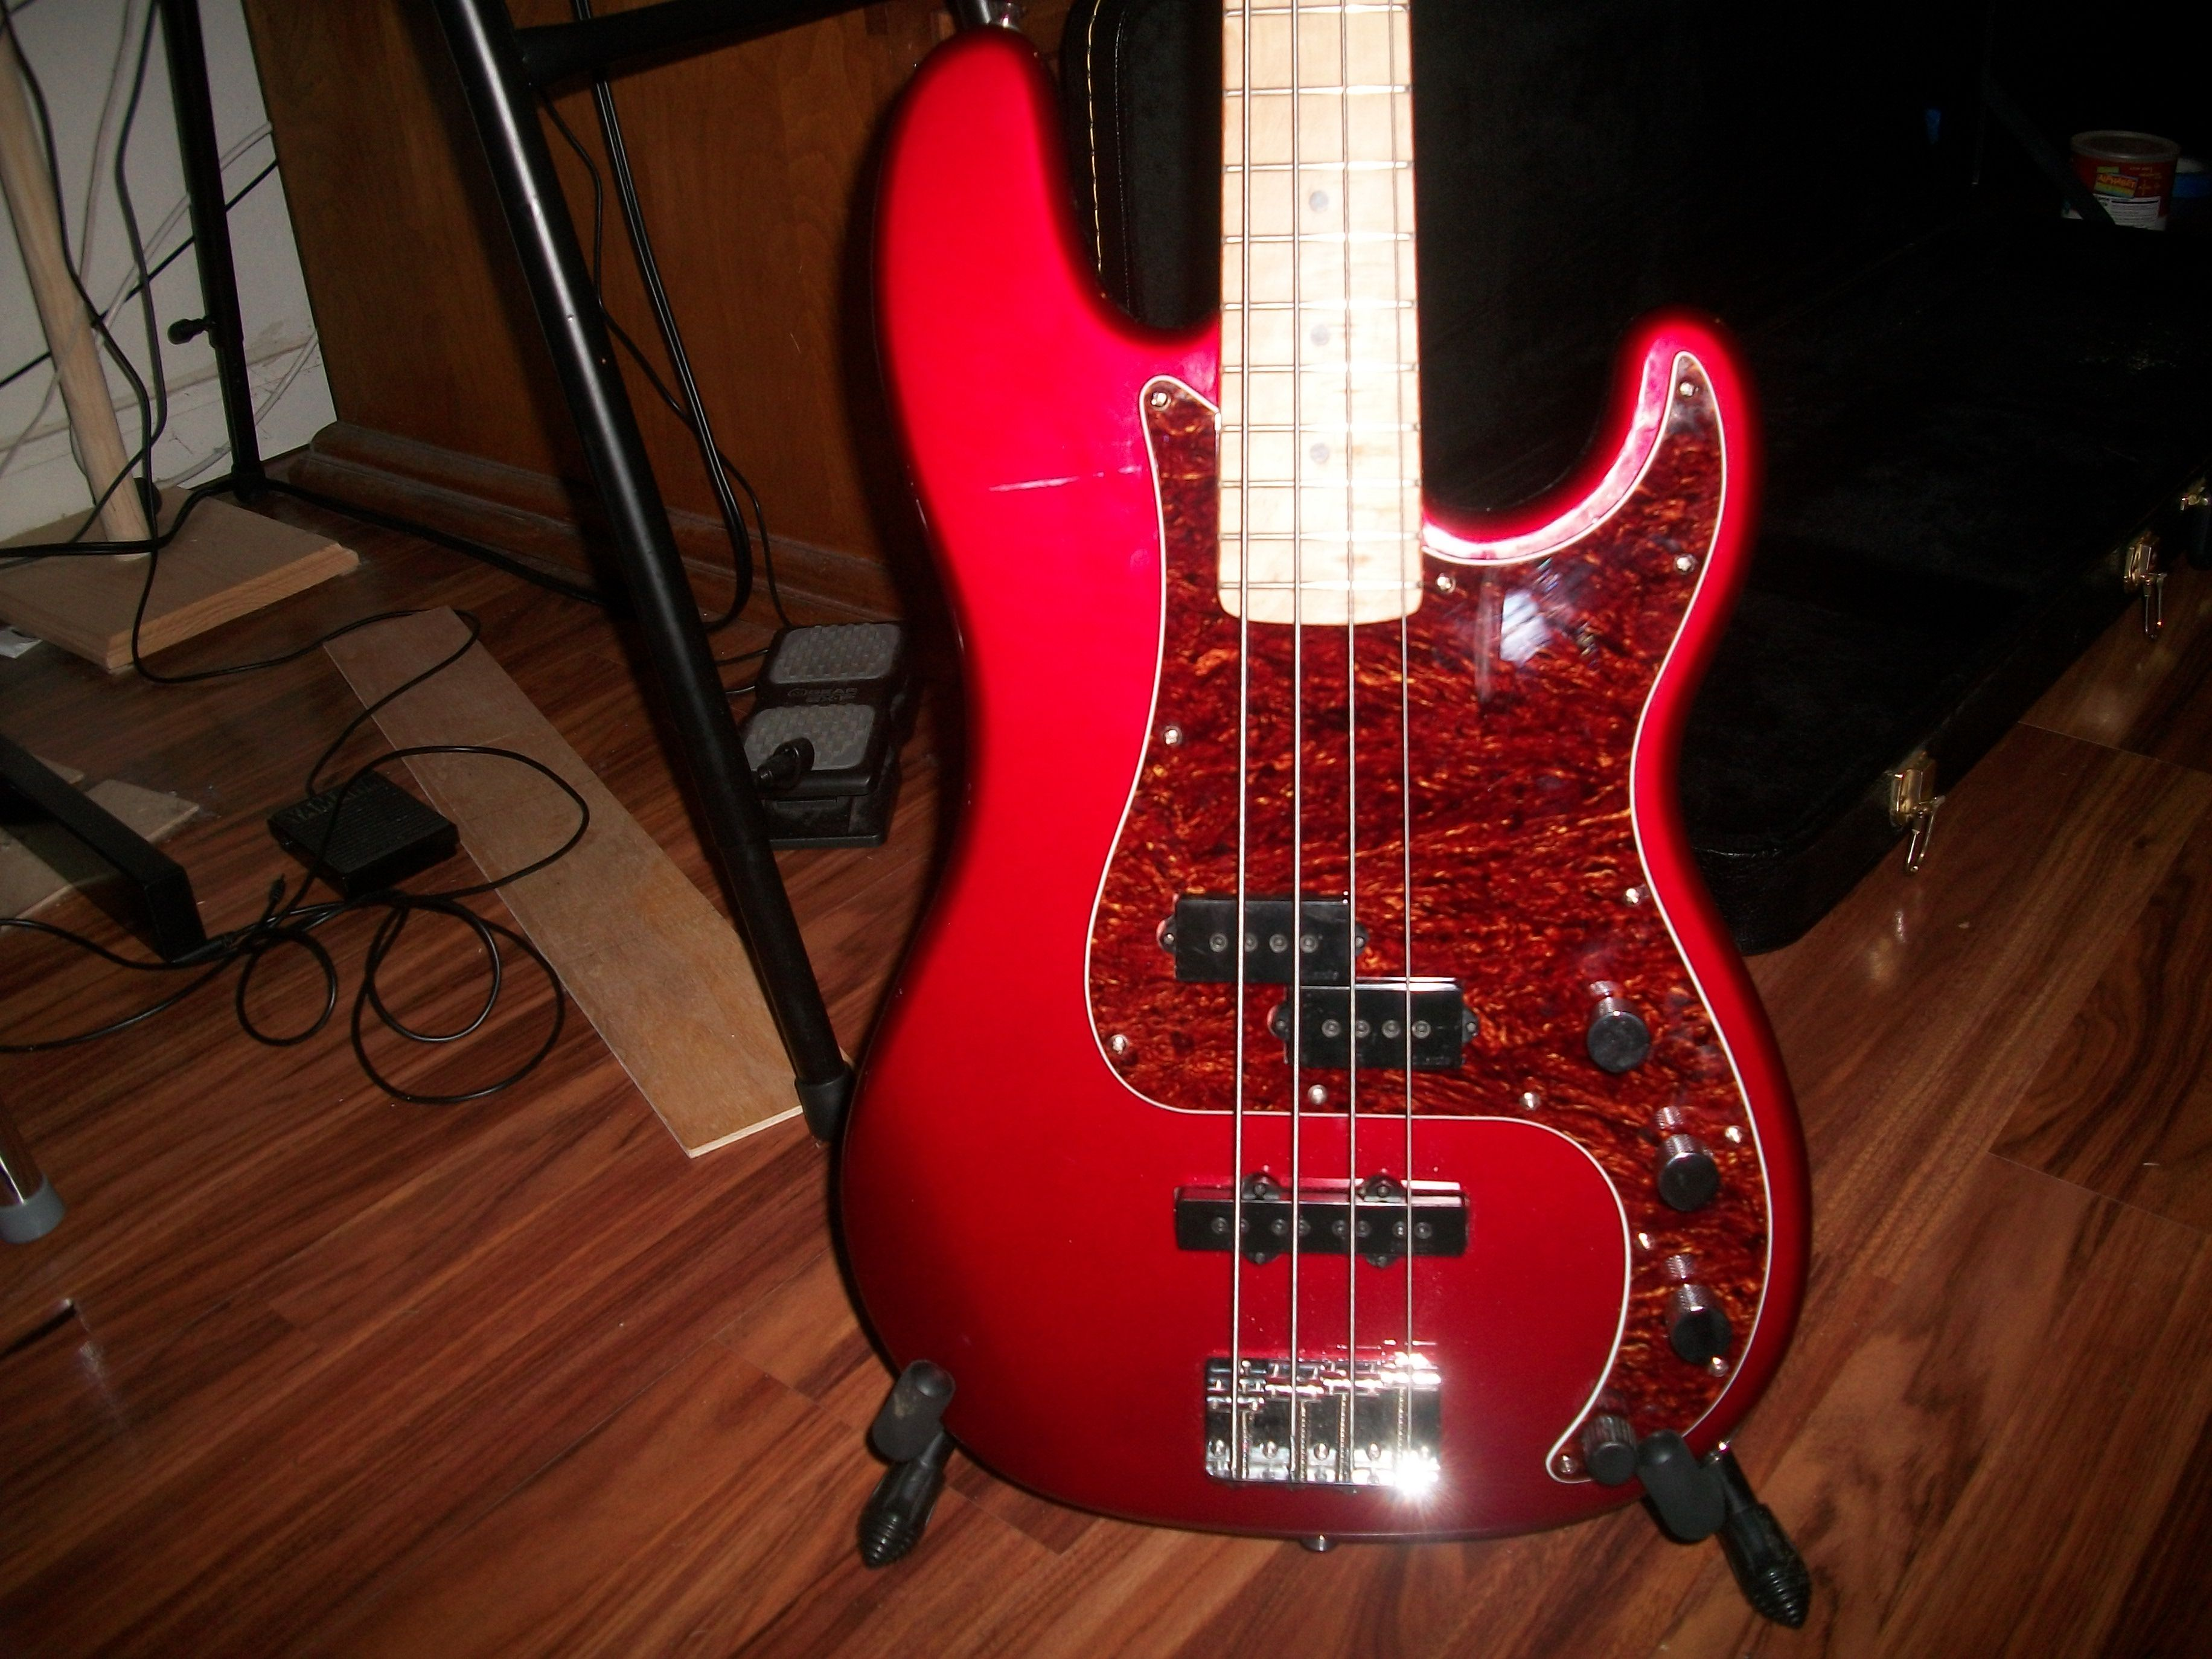 my frankenbass squier pj body jazz replacement neck dimarzio pickups a sixties style. Black Bedroom Furniture Sets. Home Design Ideas